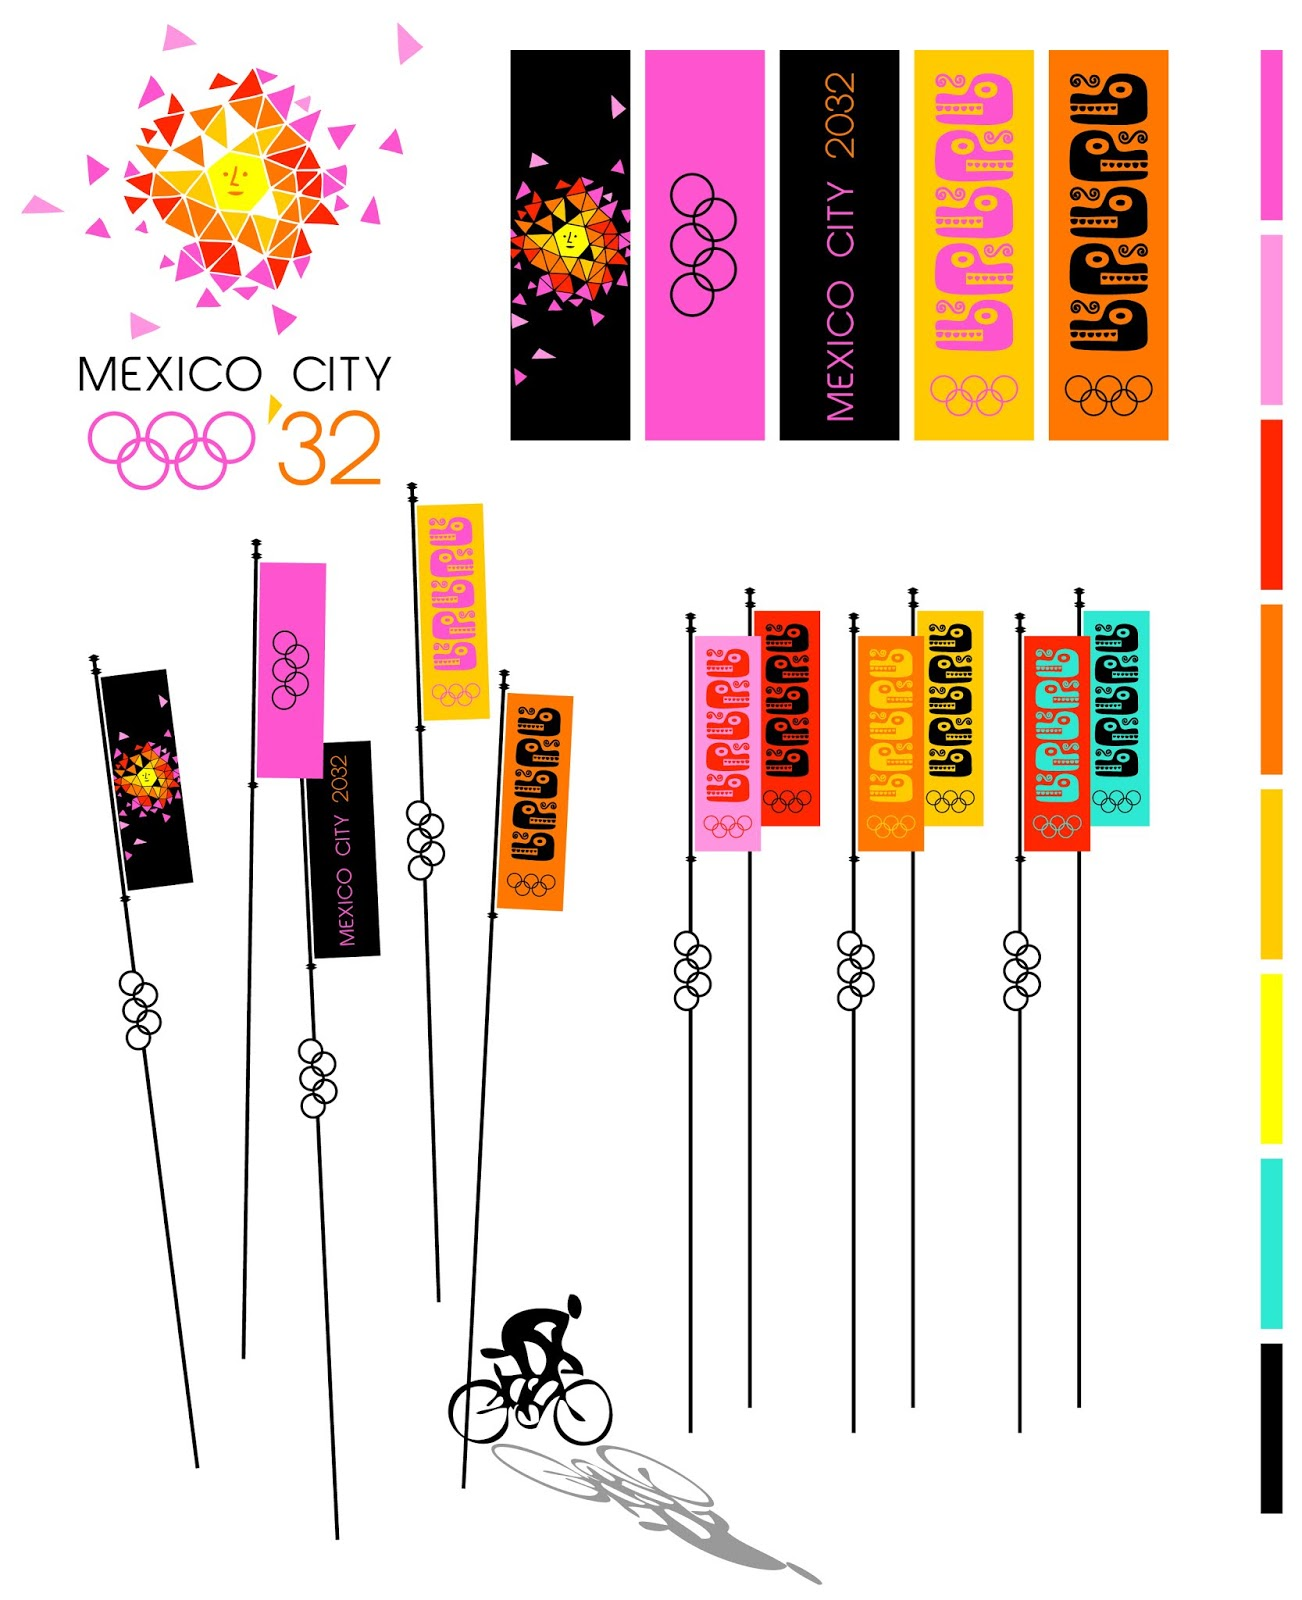 mexico-banners-and-poles-2500.jpg